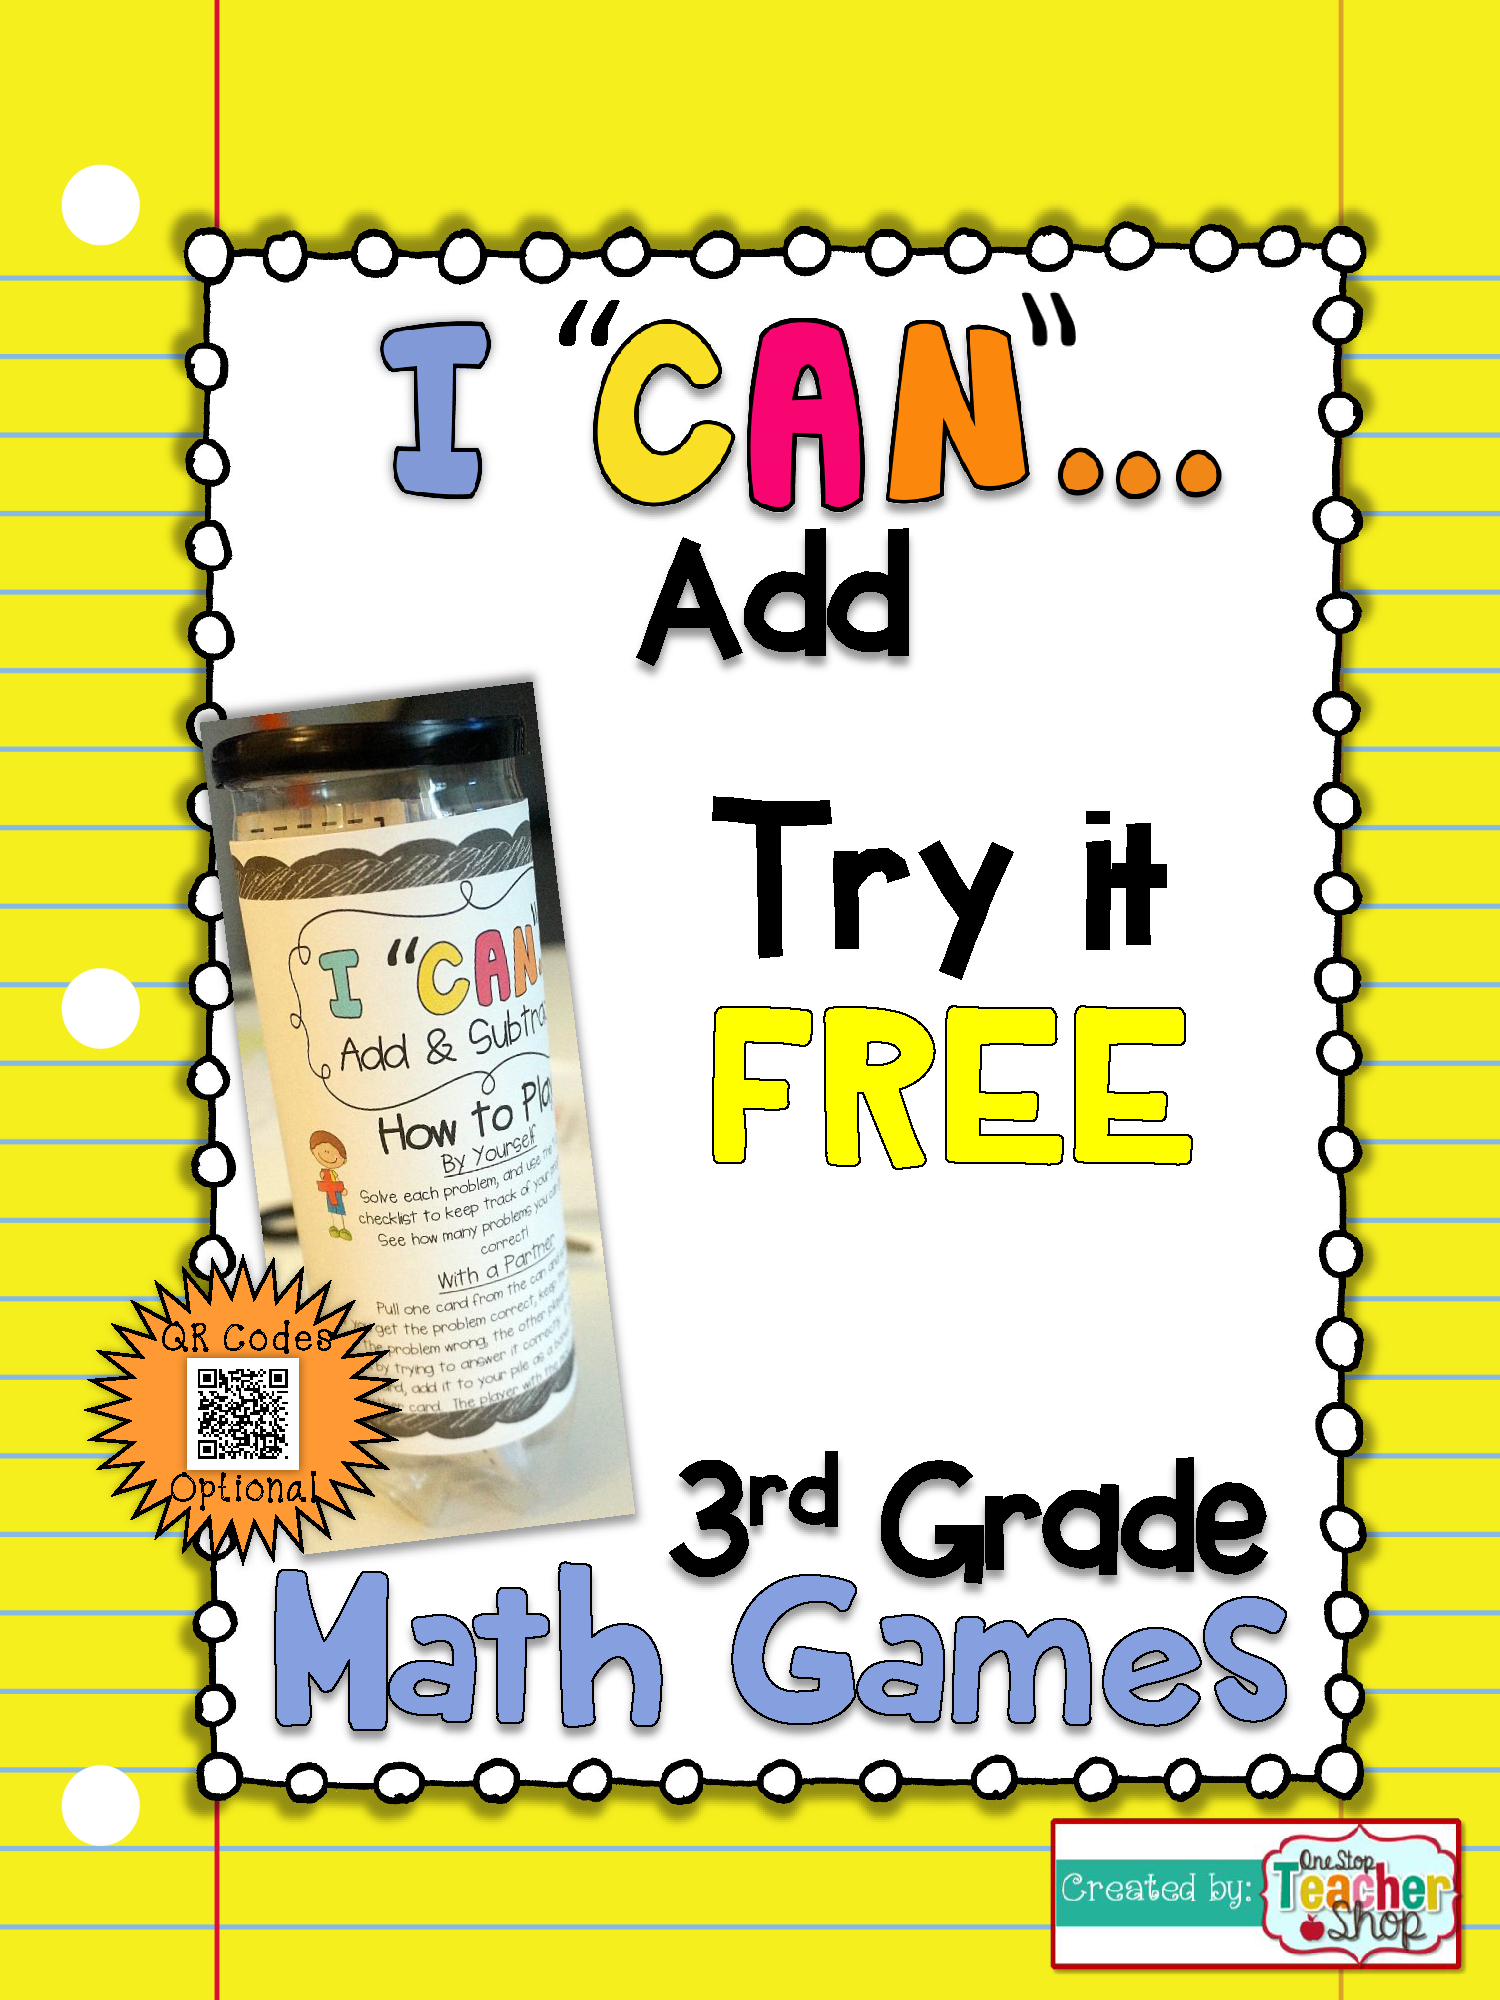 3rd Grade Addition within 1,000 Game FREE I CAN Math